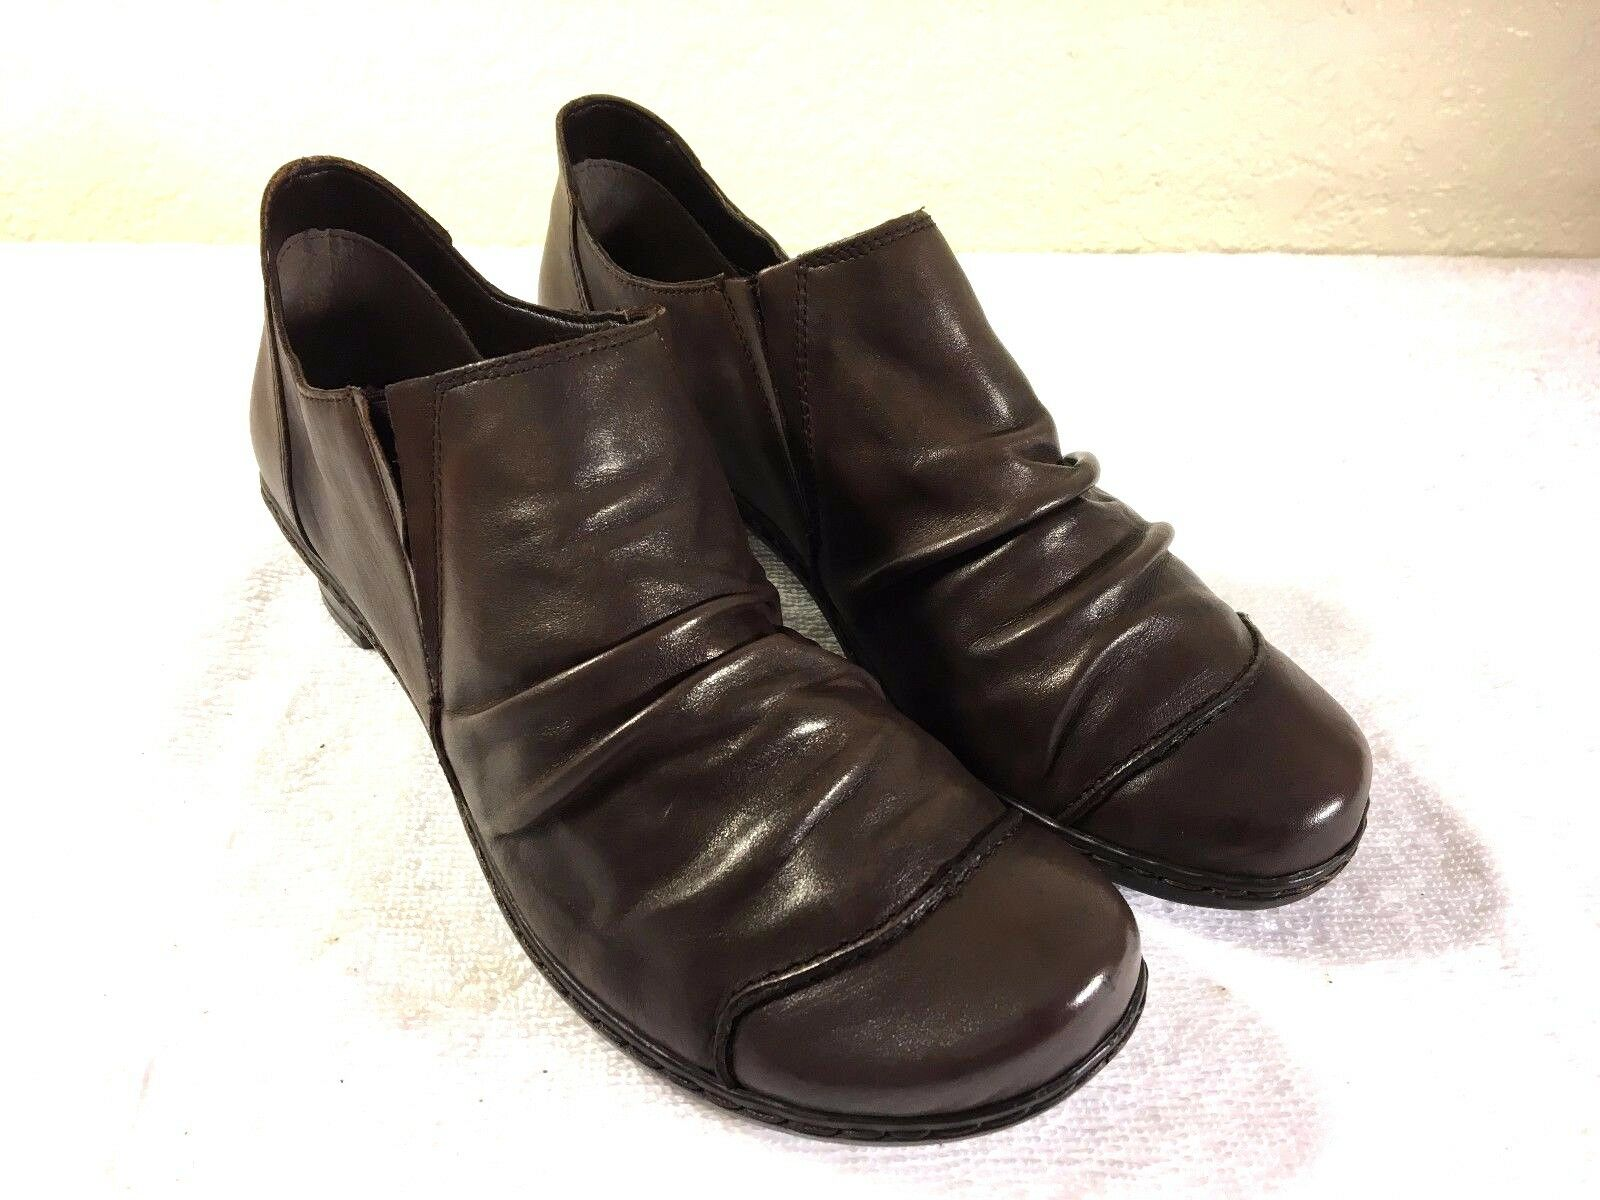 Rieker womens brown leather slip on low heels shoes size 37 Nice